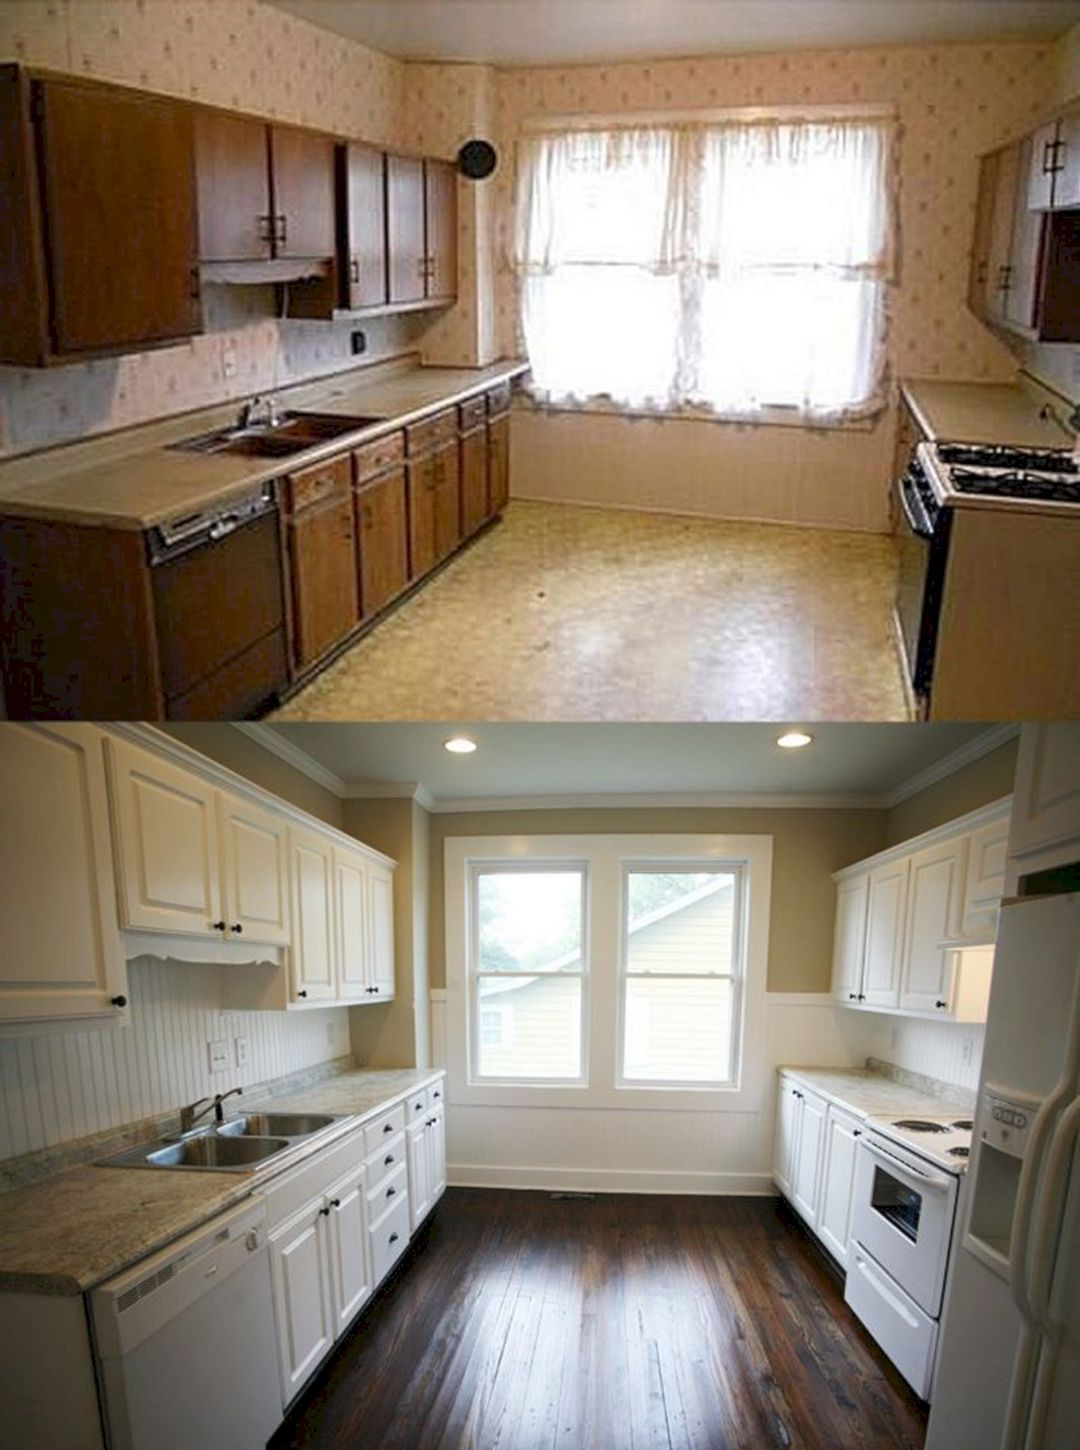 Trending 25 Best House Renovation Ideas On A Budget Home Remodeling Mobile Homes Updating House